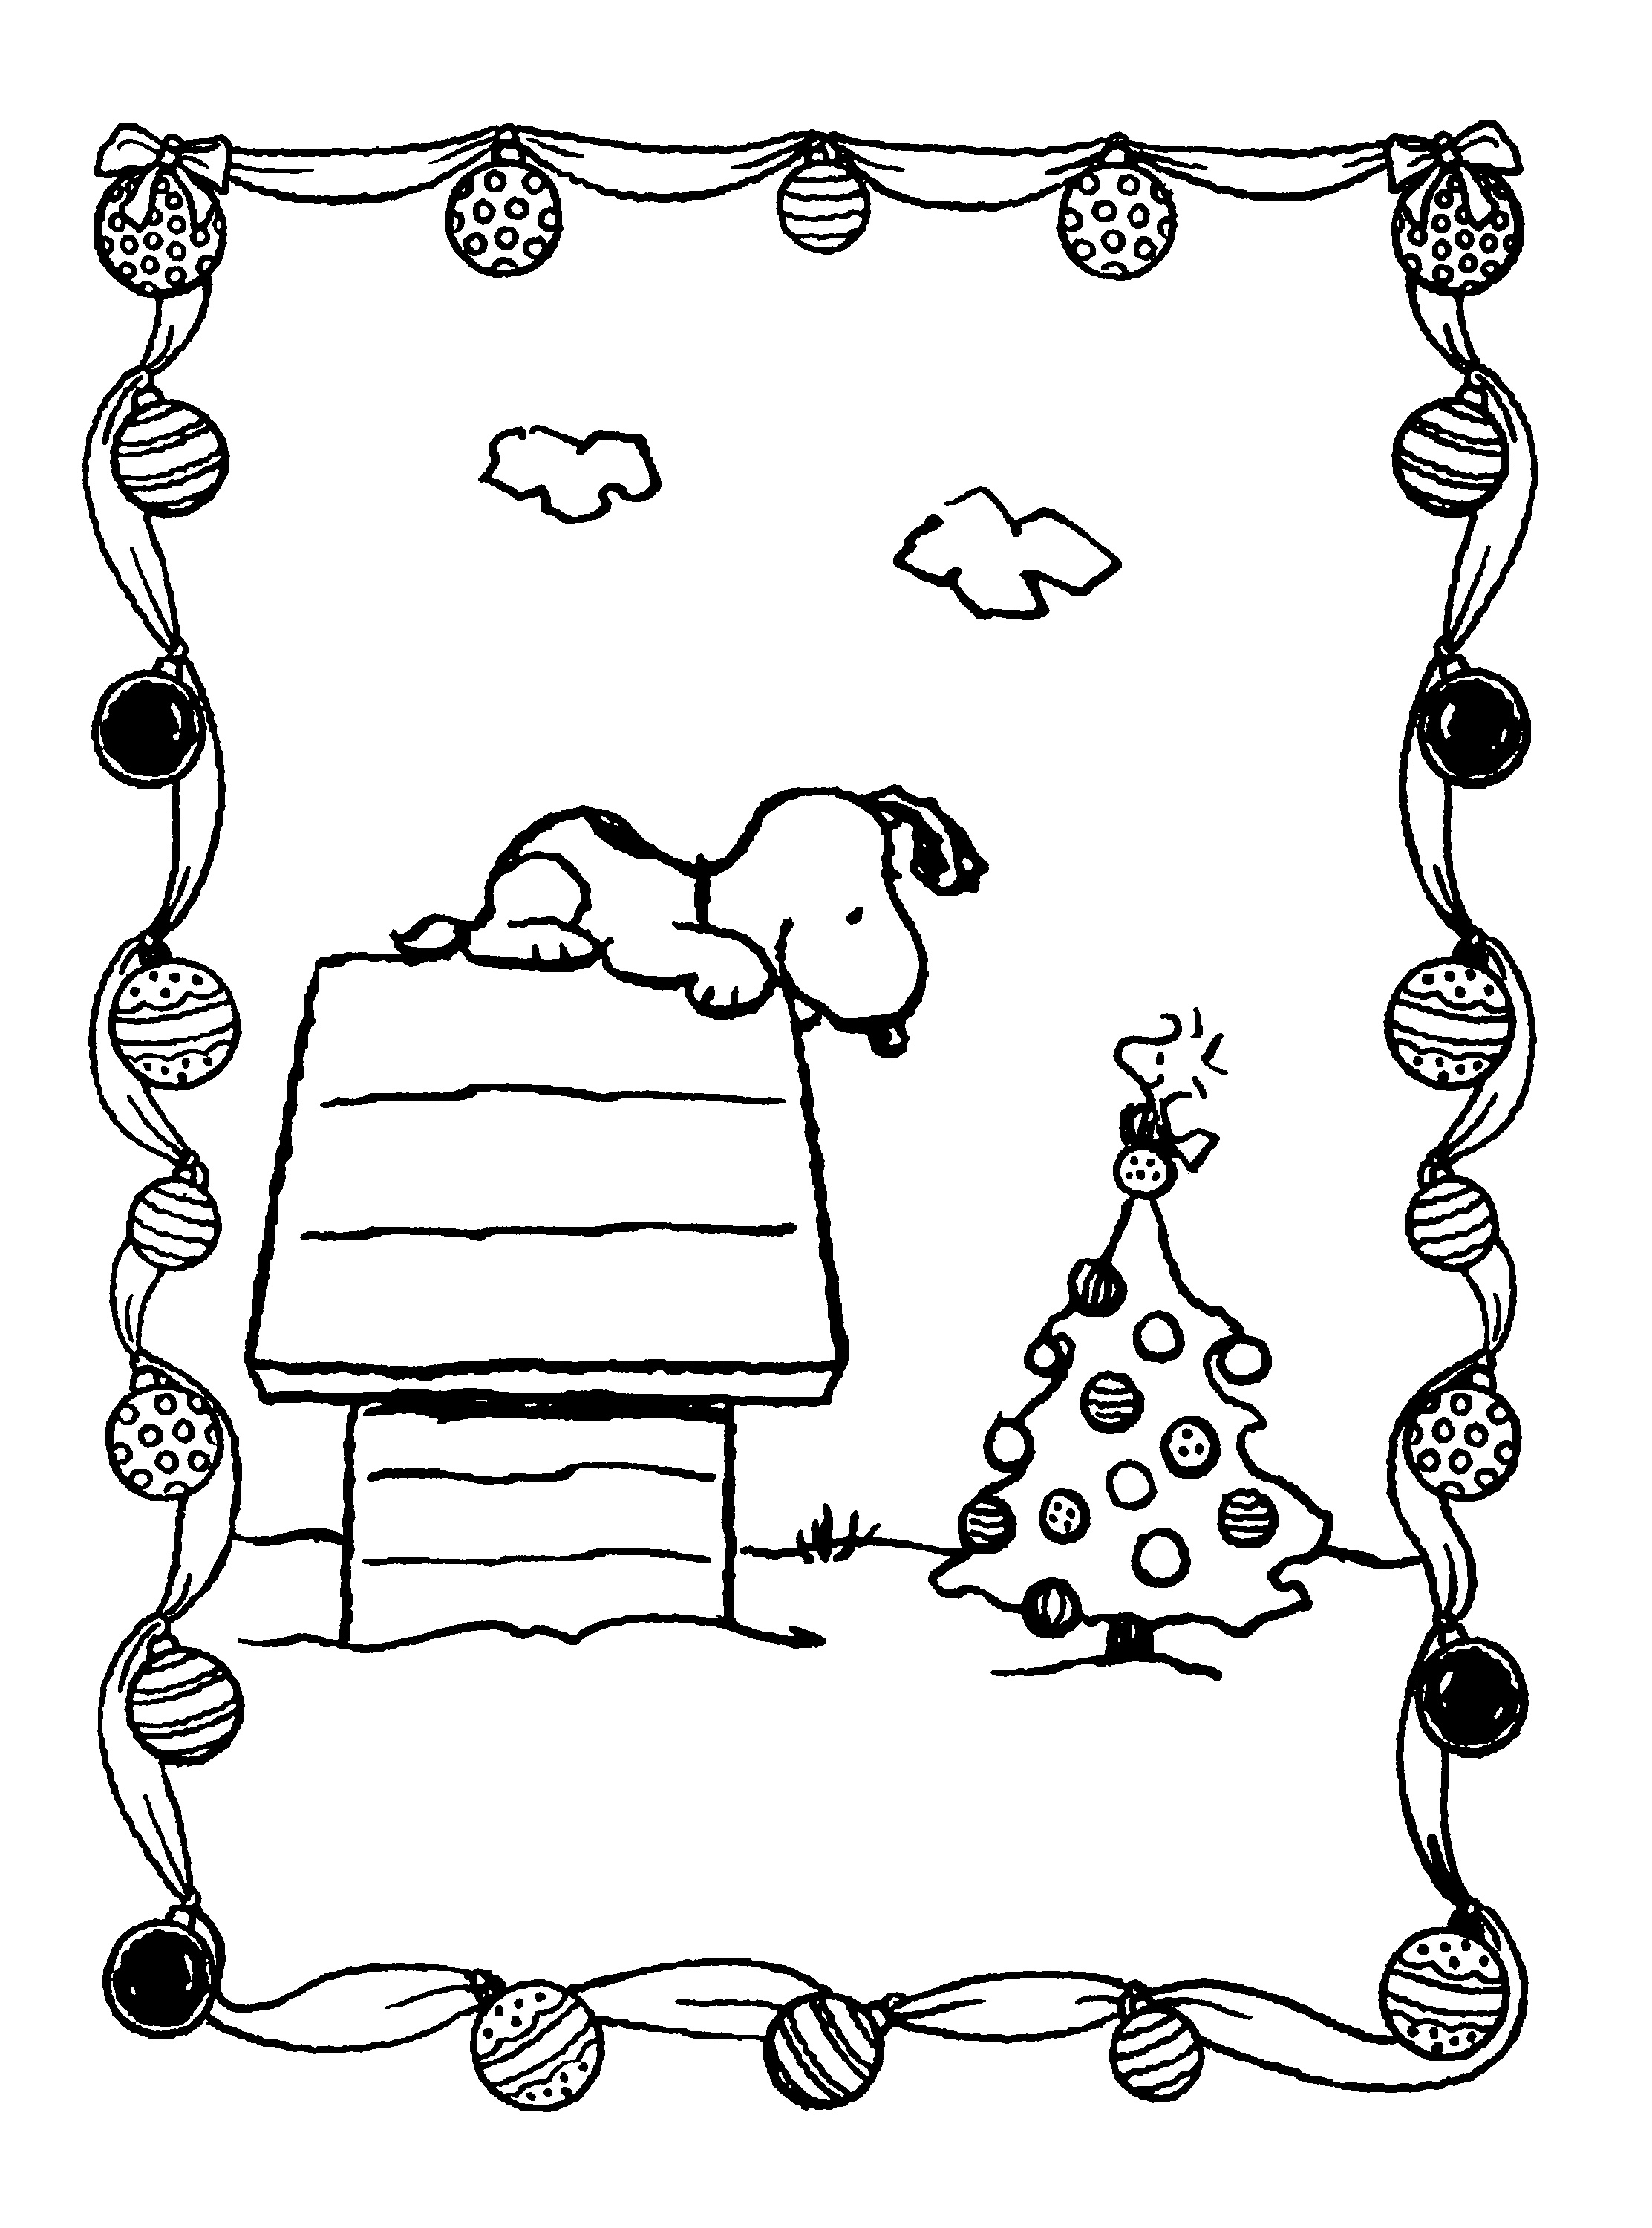 Snoopy Christmas Coloring Pages Woodstock